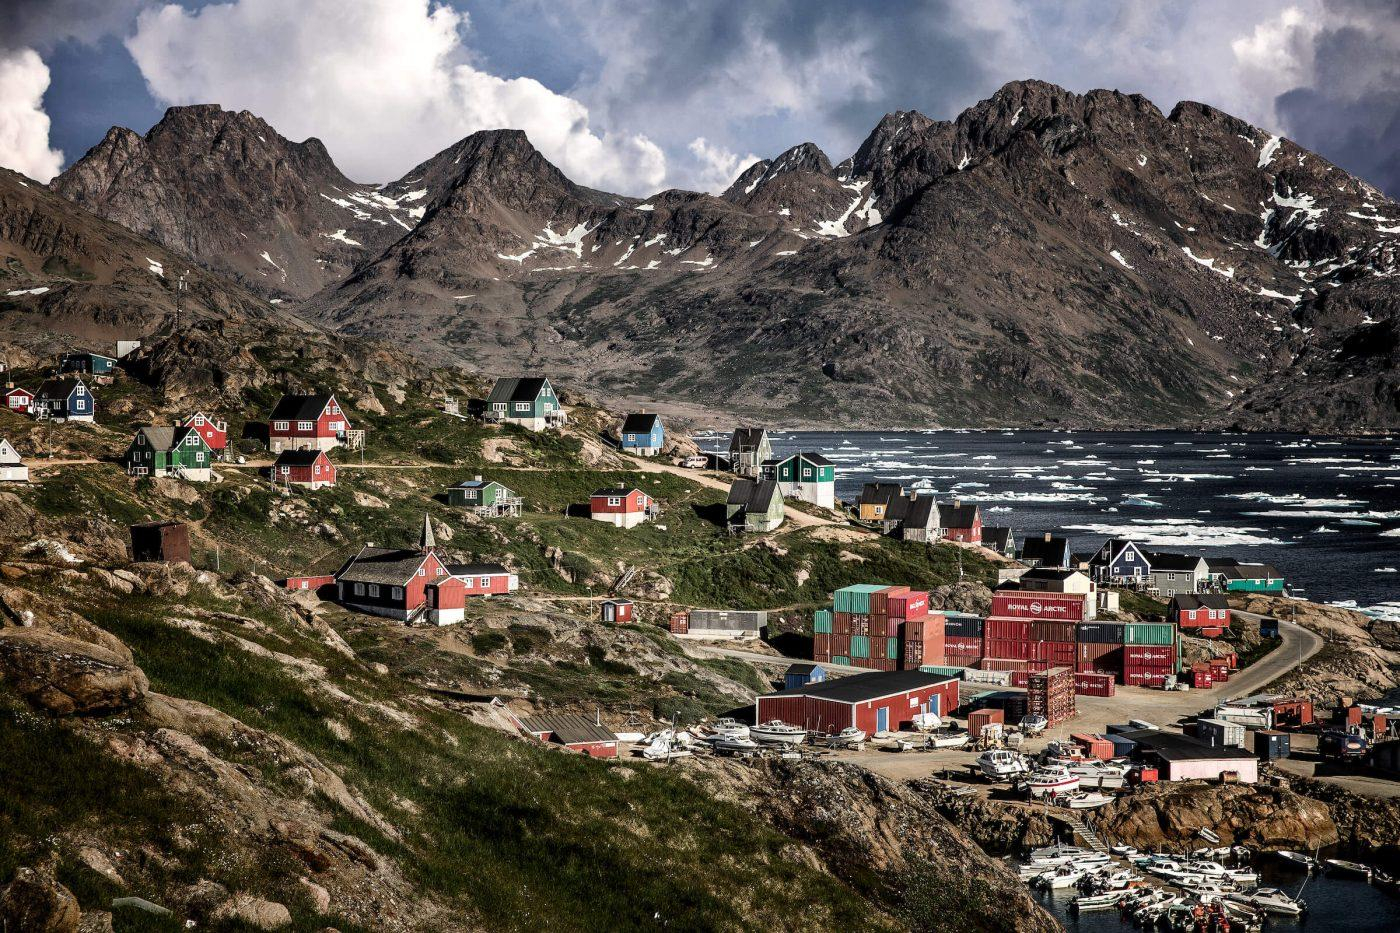 A summer view over parts of Tasiilaq in East Greenland. By Mads Pihl